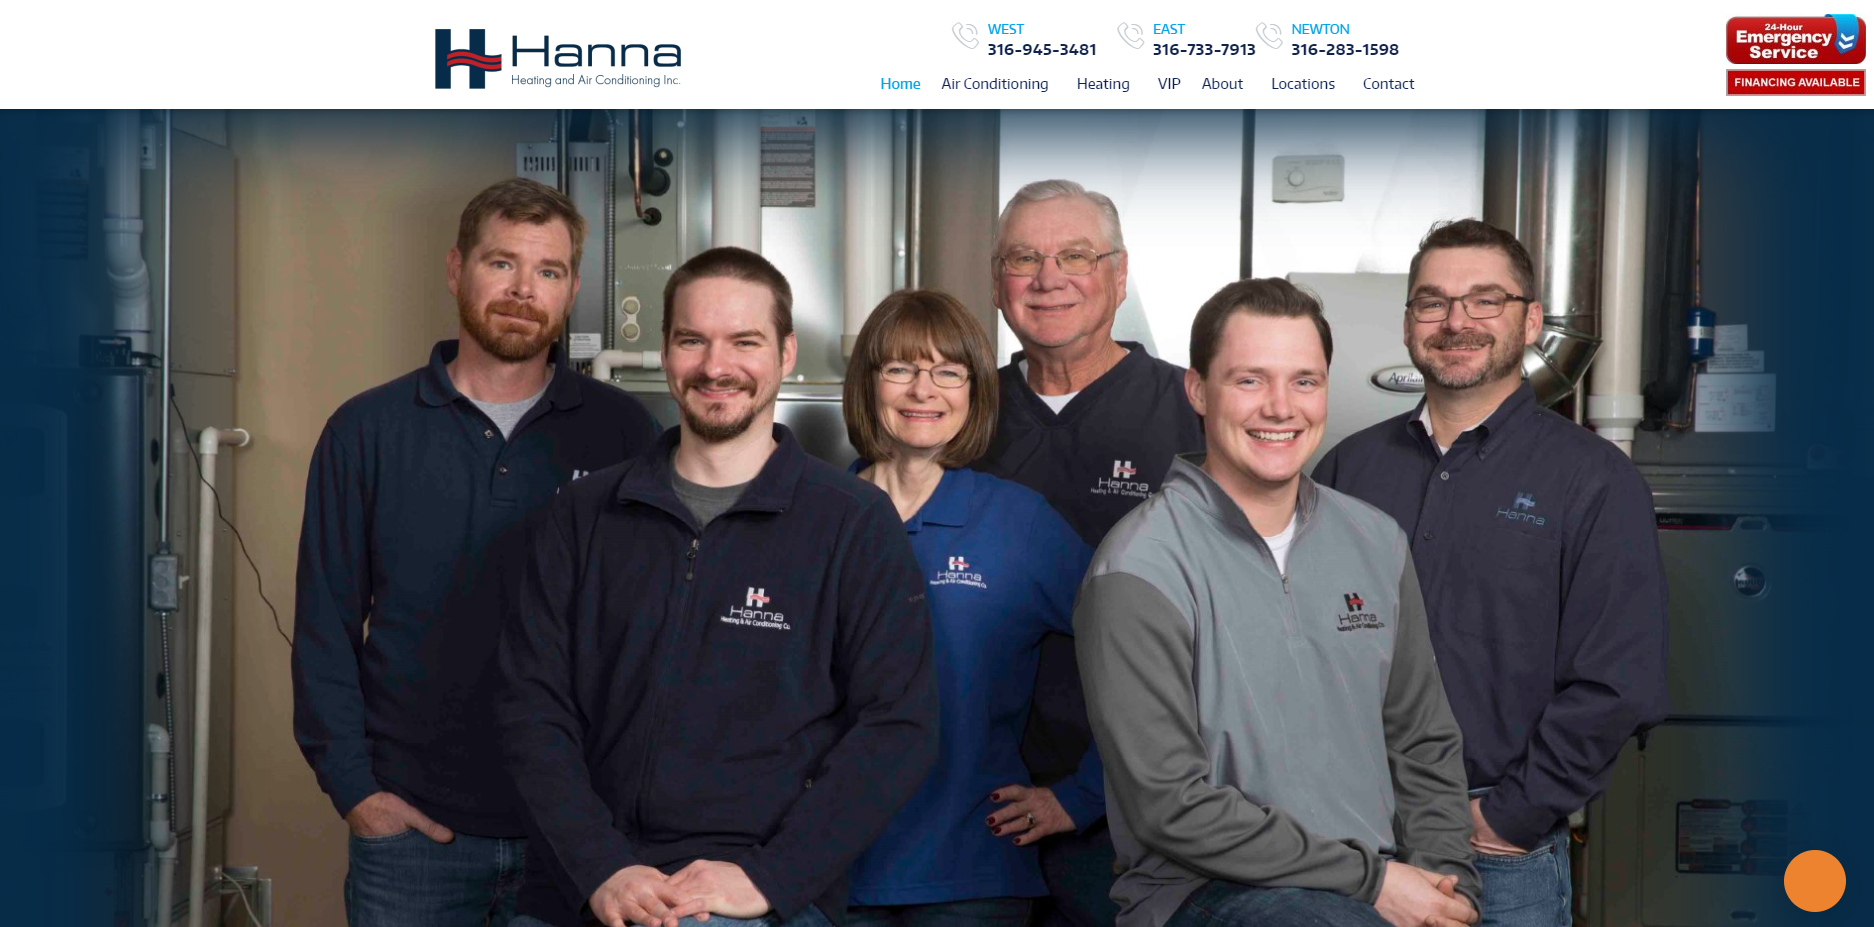 WEB Hanna After1 - Are you tired of seeing Schaal, Bell Brothers, and Lozier at the top of Google?